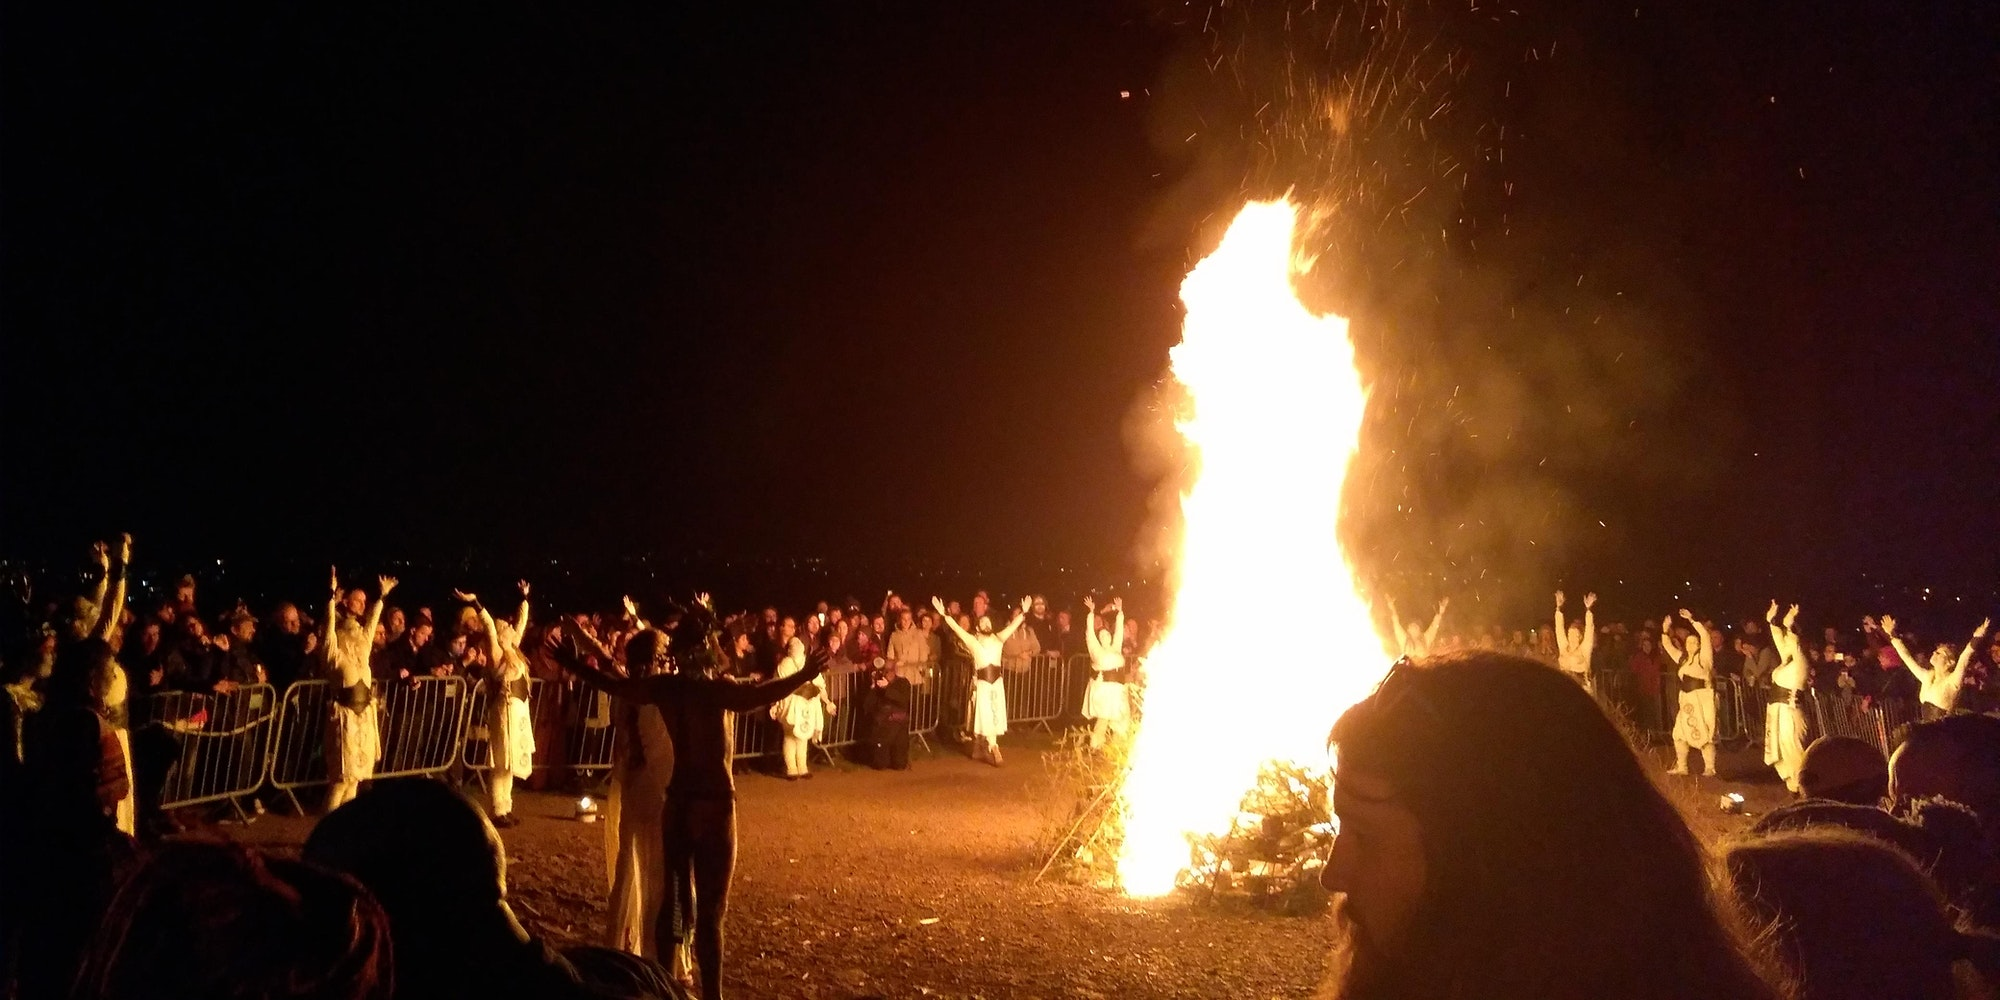 "Bonfire at the Beltane Fire Festival 2019, Calton Hill, Edinburgh. The reunited May Queen and Green Man face the fire, while dancers stop to raise their arms to heaven. Photo by ""Nyri0"" This file is licensed under the Creative Commons Attribution-Share Alike 4.0 International license."